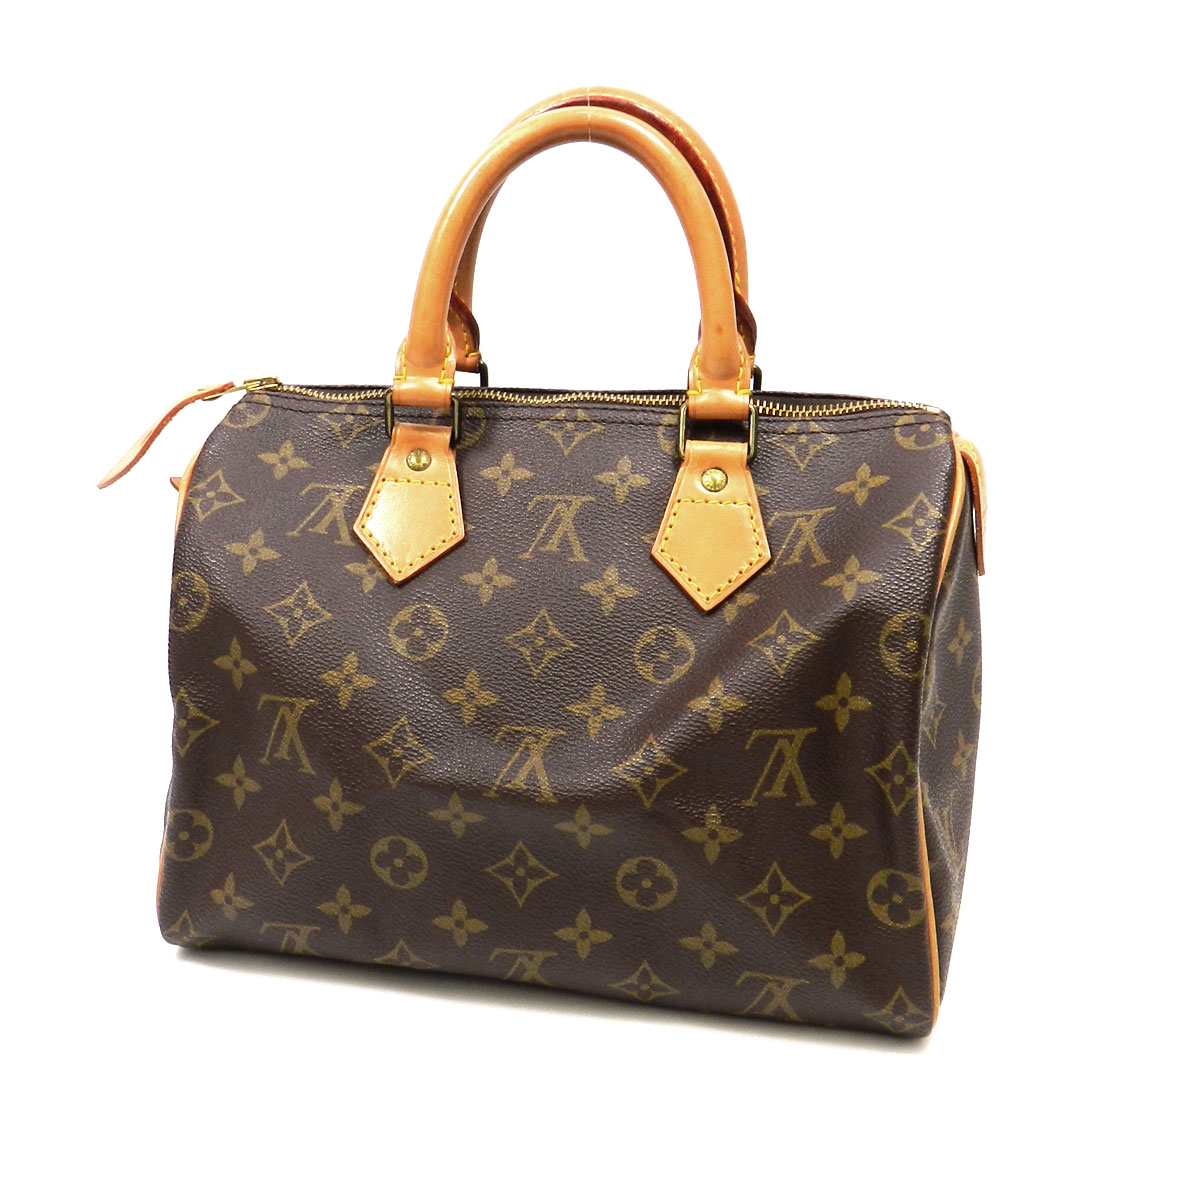 fake louis vuitton for cheap sale fake louis vuitton purses. Black Bedroom Furniture Sets. Home Design Ideas